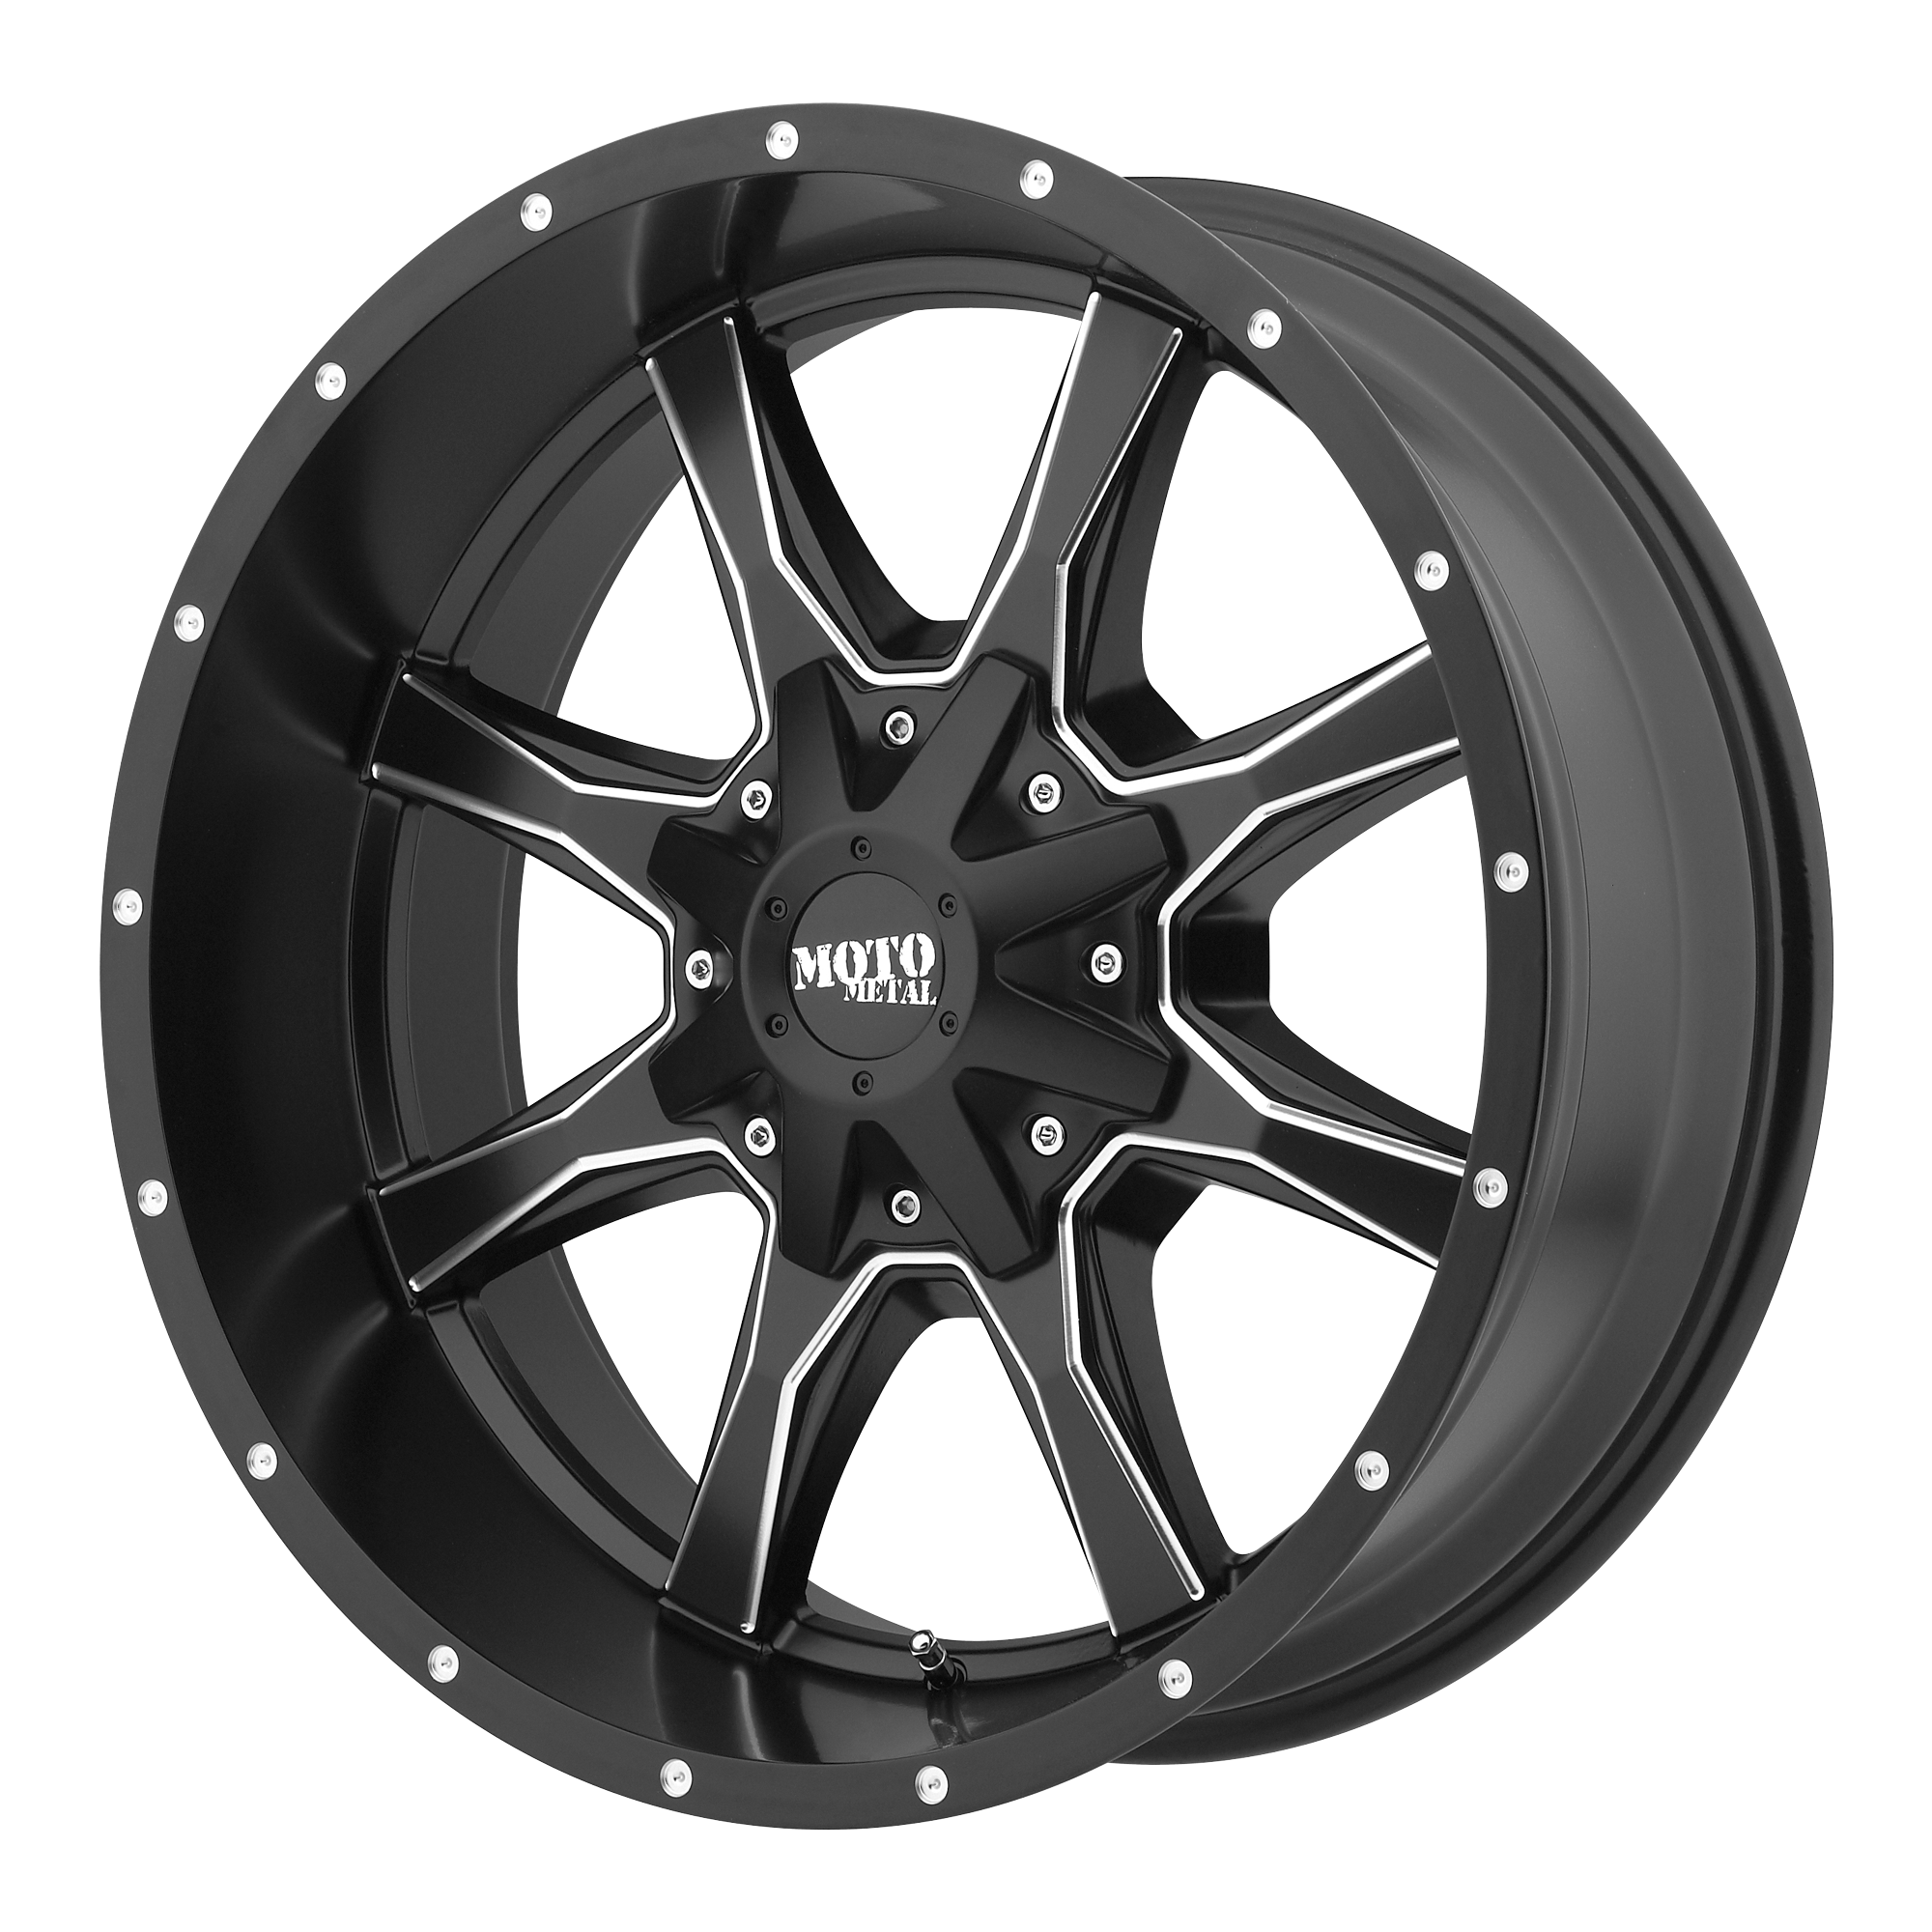 Moto Metal Offroad Wheels MO970 Satin Black Milled